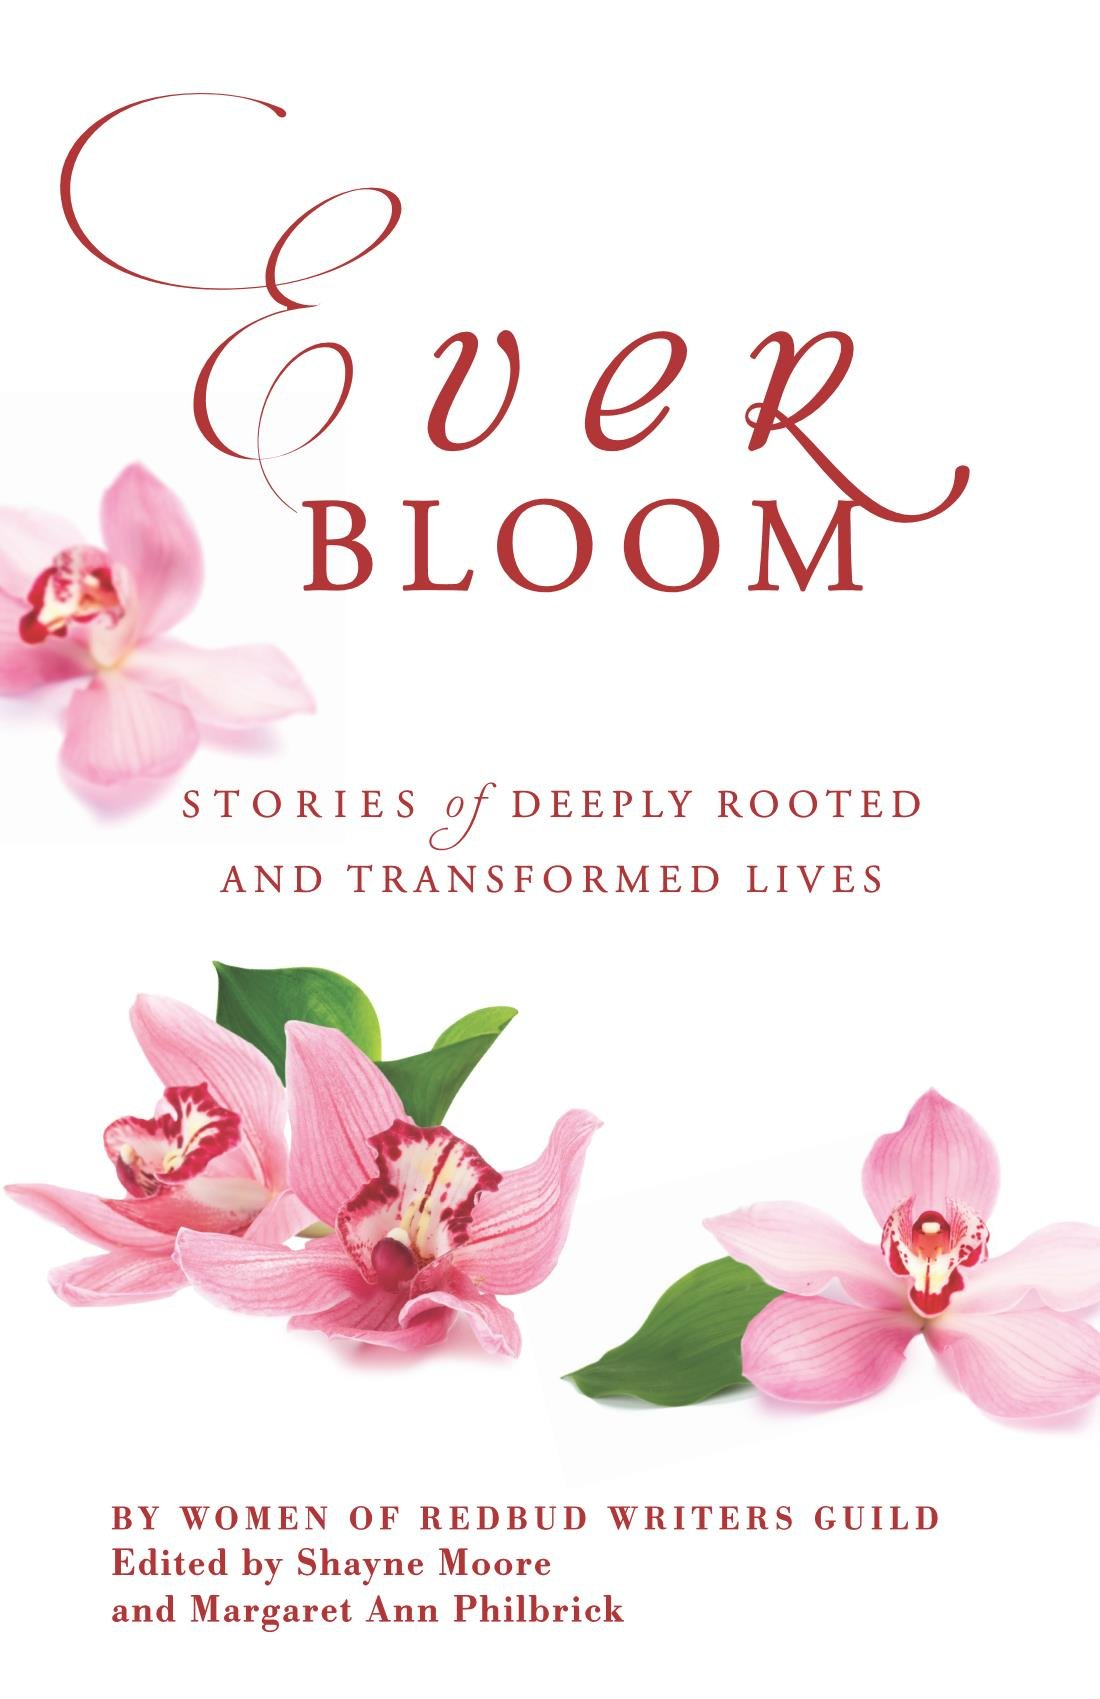 - CLICK TO PURCHASE:https://www.amazon.com/Everbloom-Stories-Deeply-Rooted-Transformed/dp/1612619339